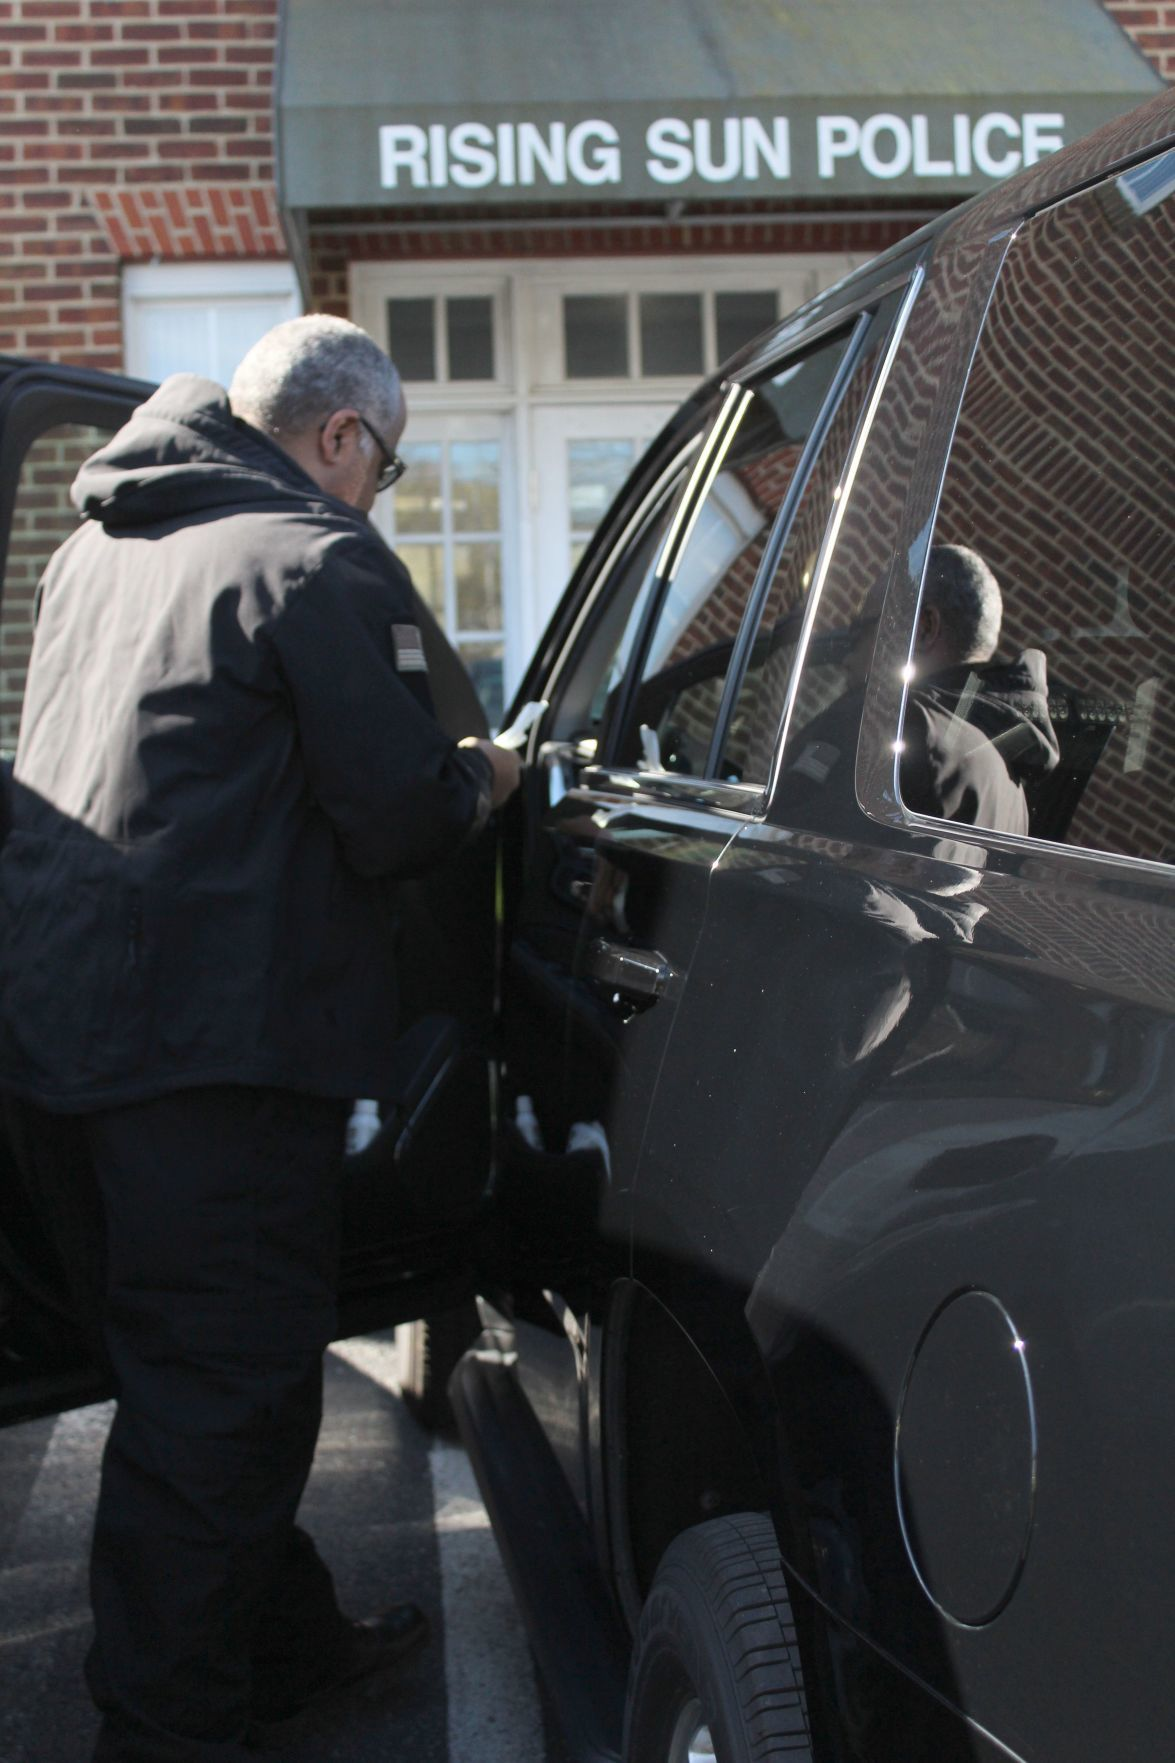 Police ISO cleaning wipes to stay healthy on patrol